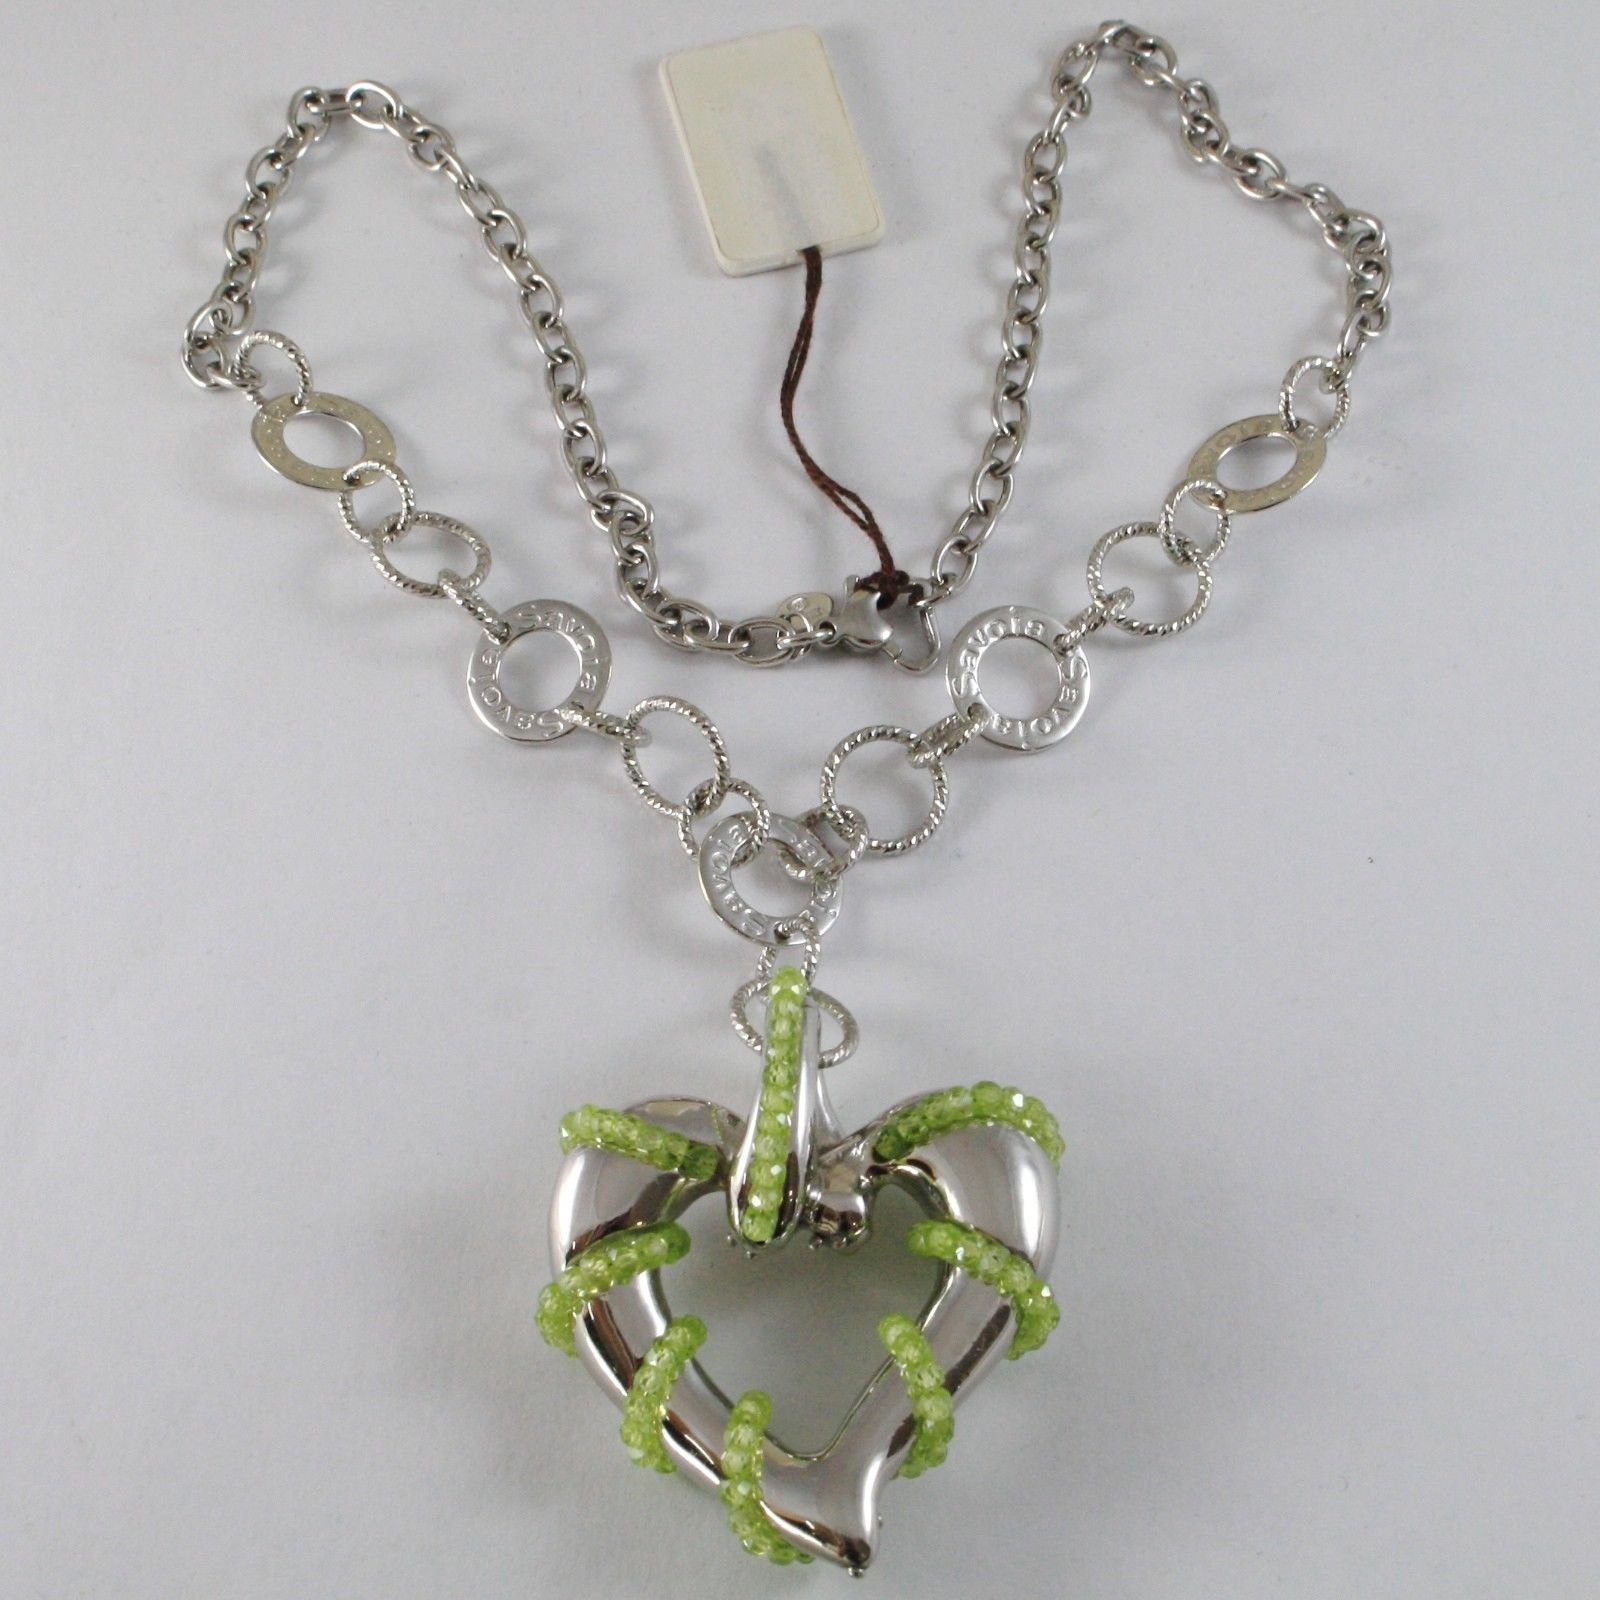 925 STERLING SILVER SAVOIA NECKLACE WITH PERIDOT FINELY WORKED BIG HEART PENDANT